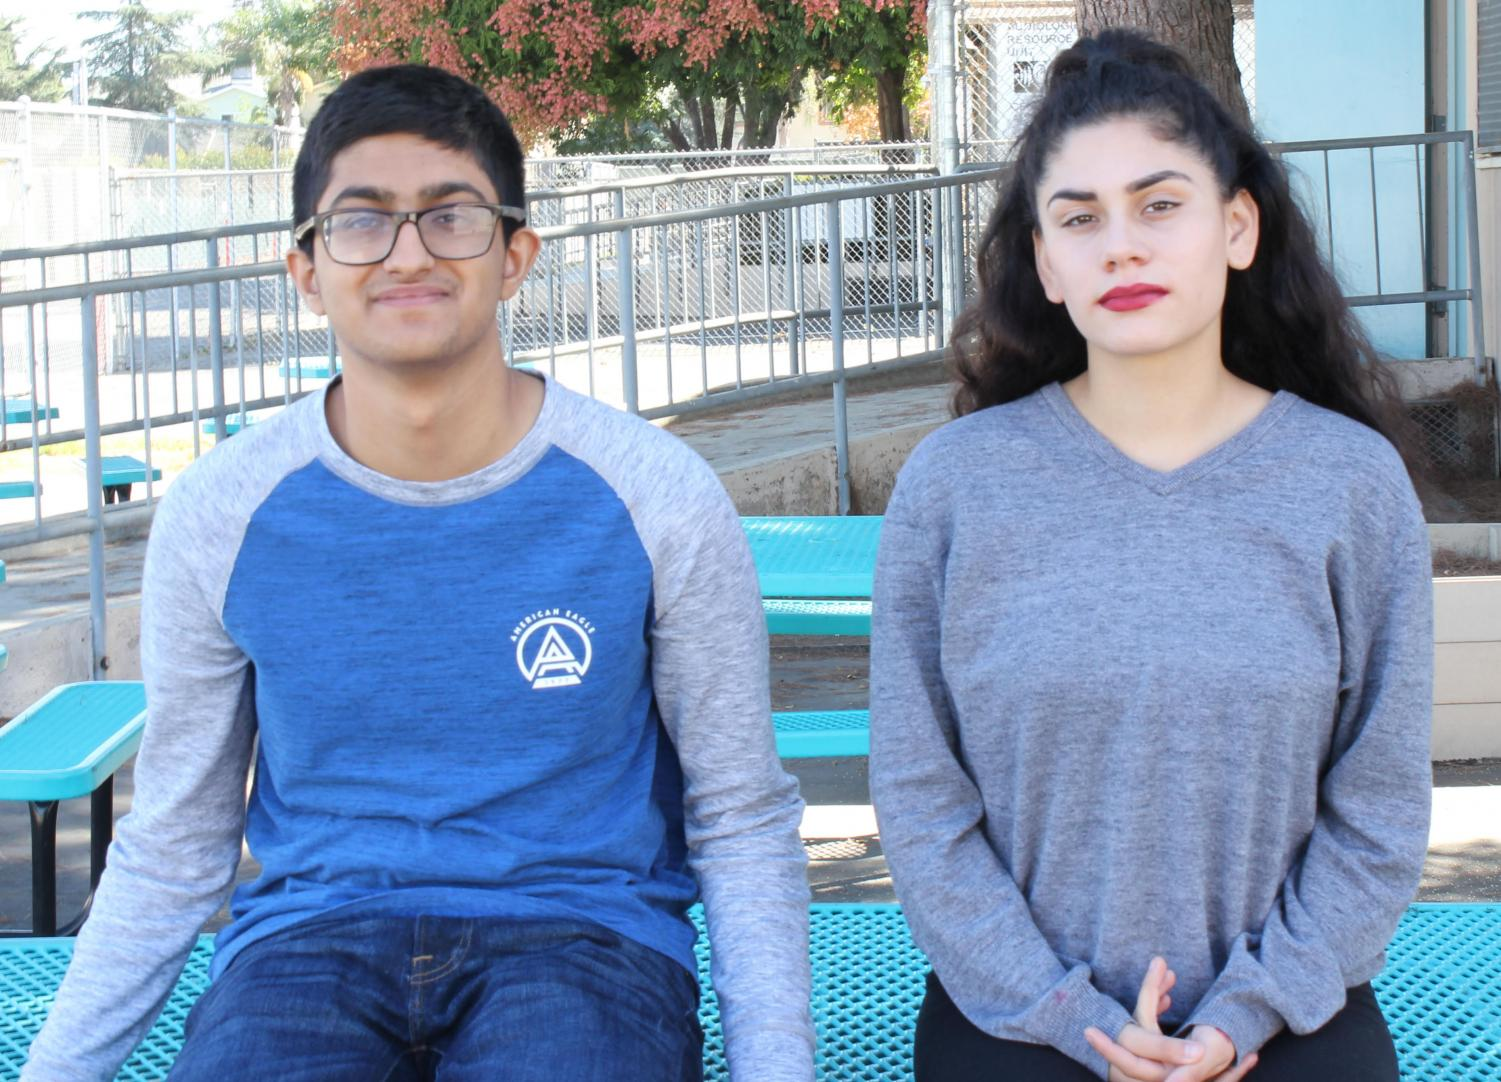 Print Editor-in-chief Parampreet Aulakh and Online Editor-in-chief Alondra Nuno hope this year is as successful as last year for the publication.